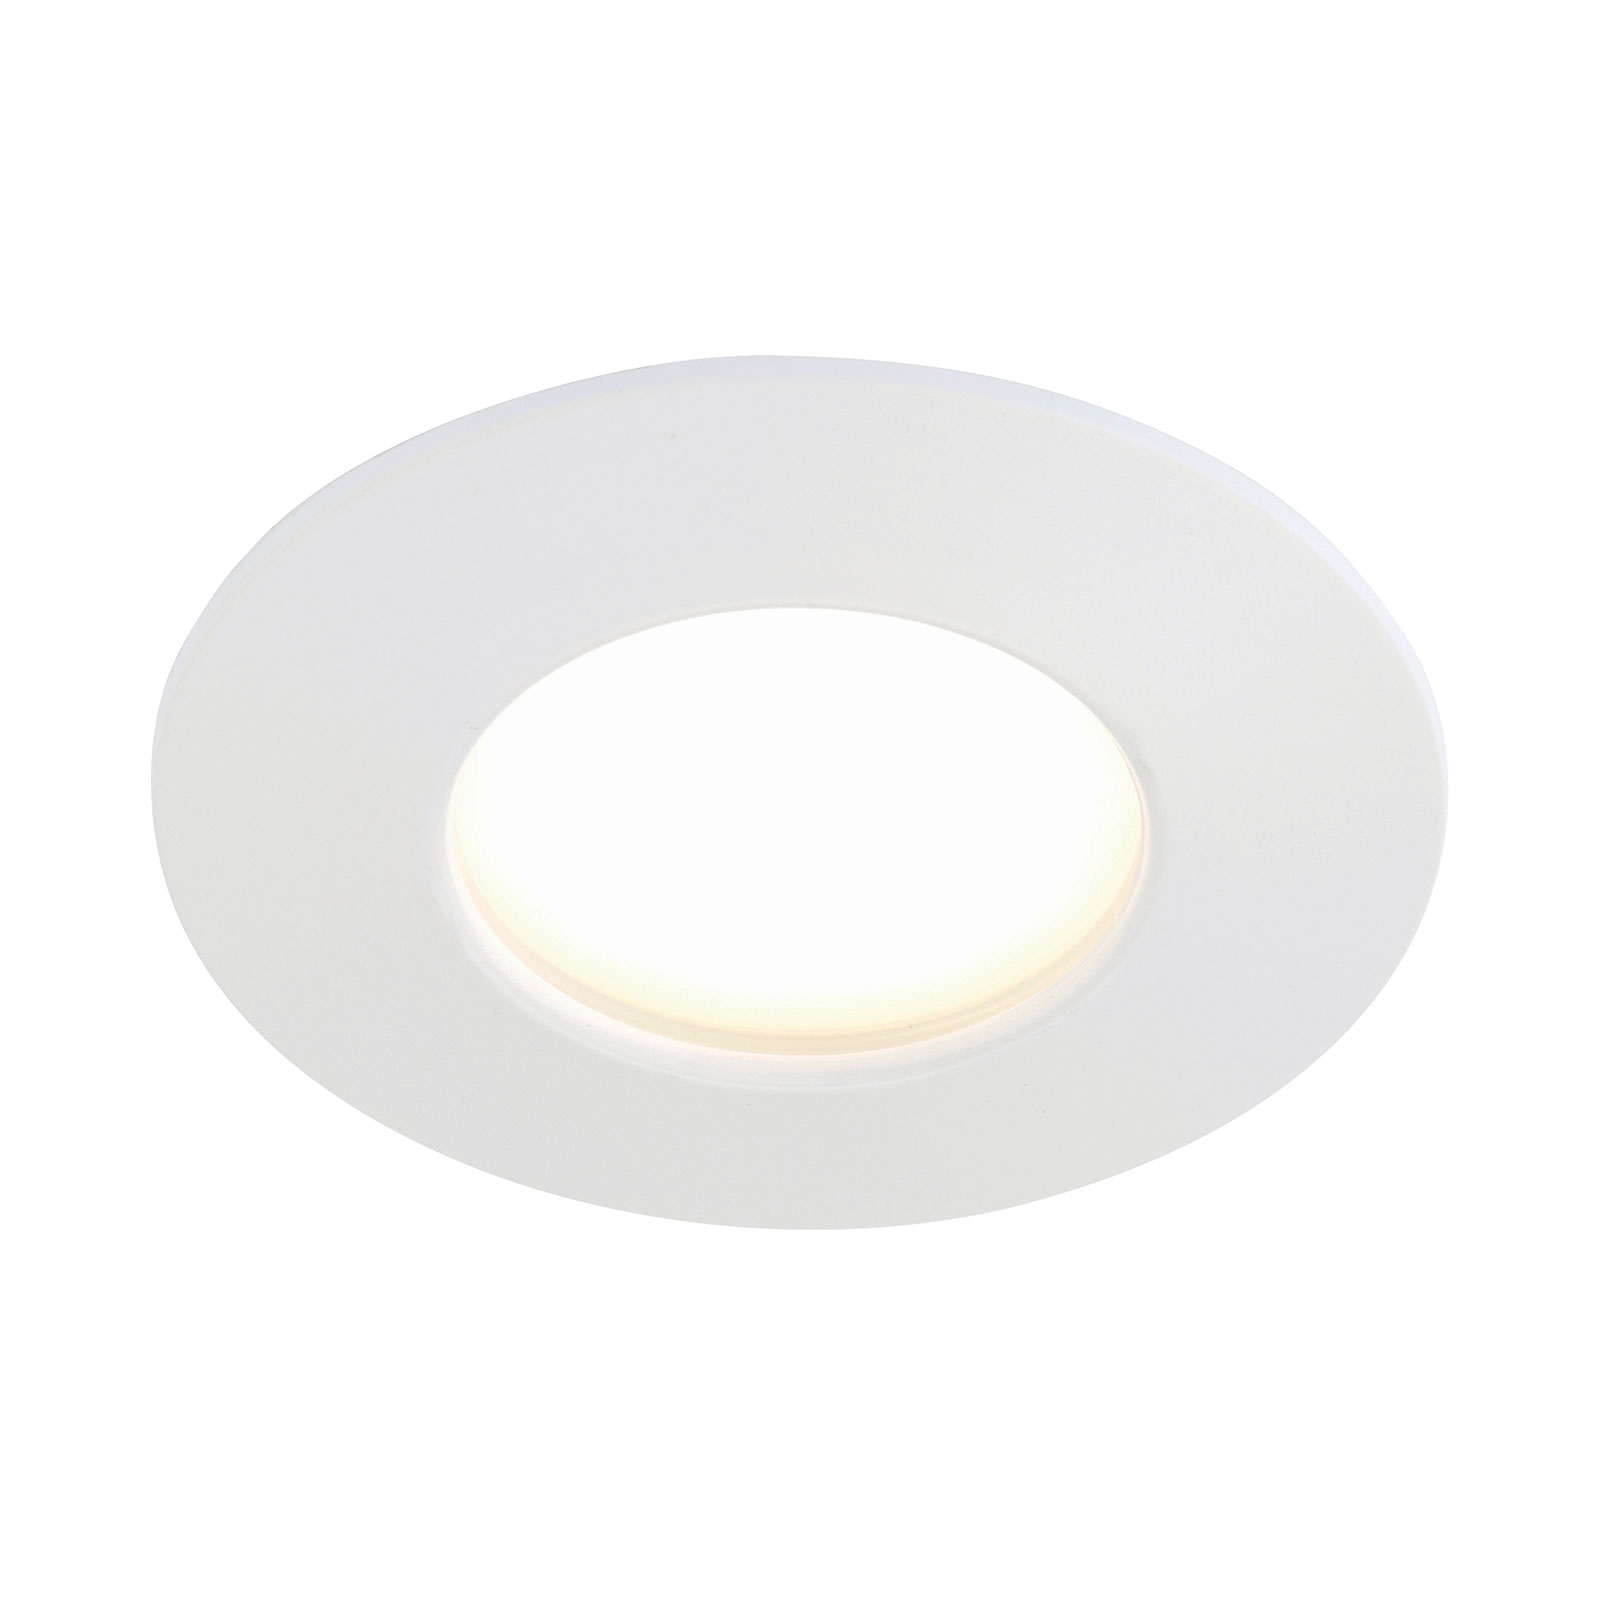 White LED recessed light Till for outdoor usage_1510334_1